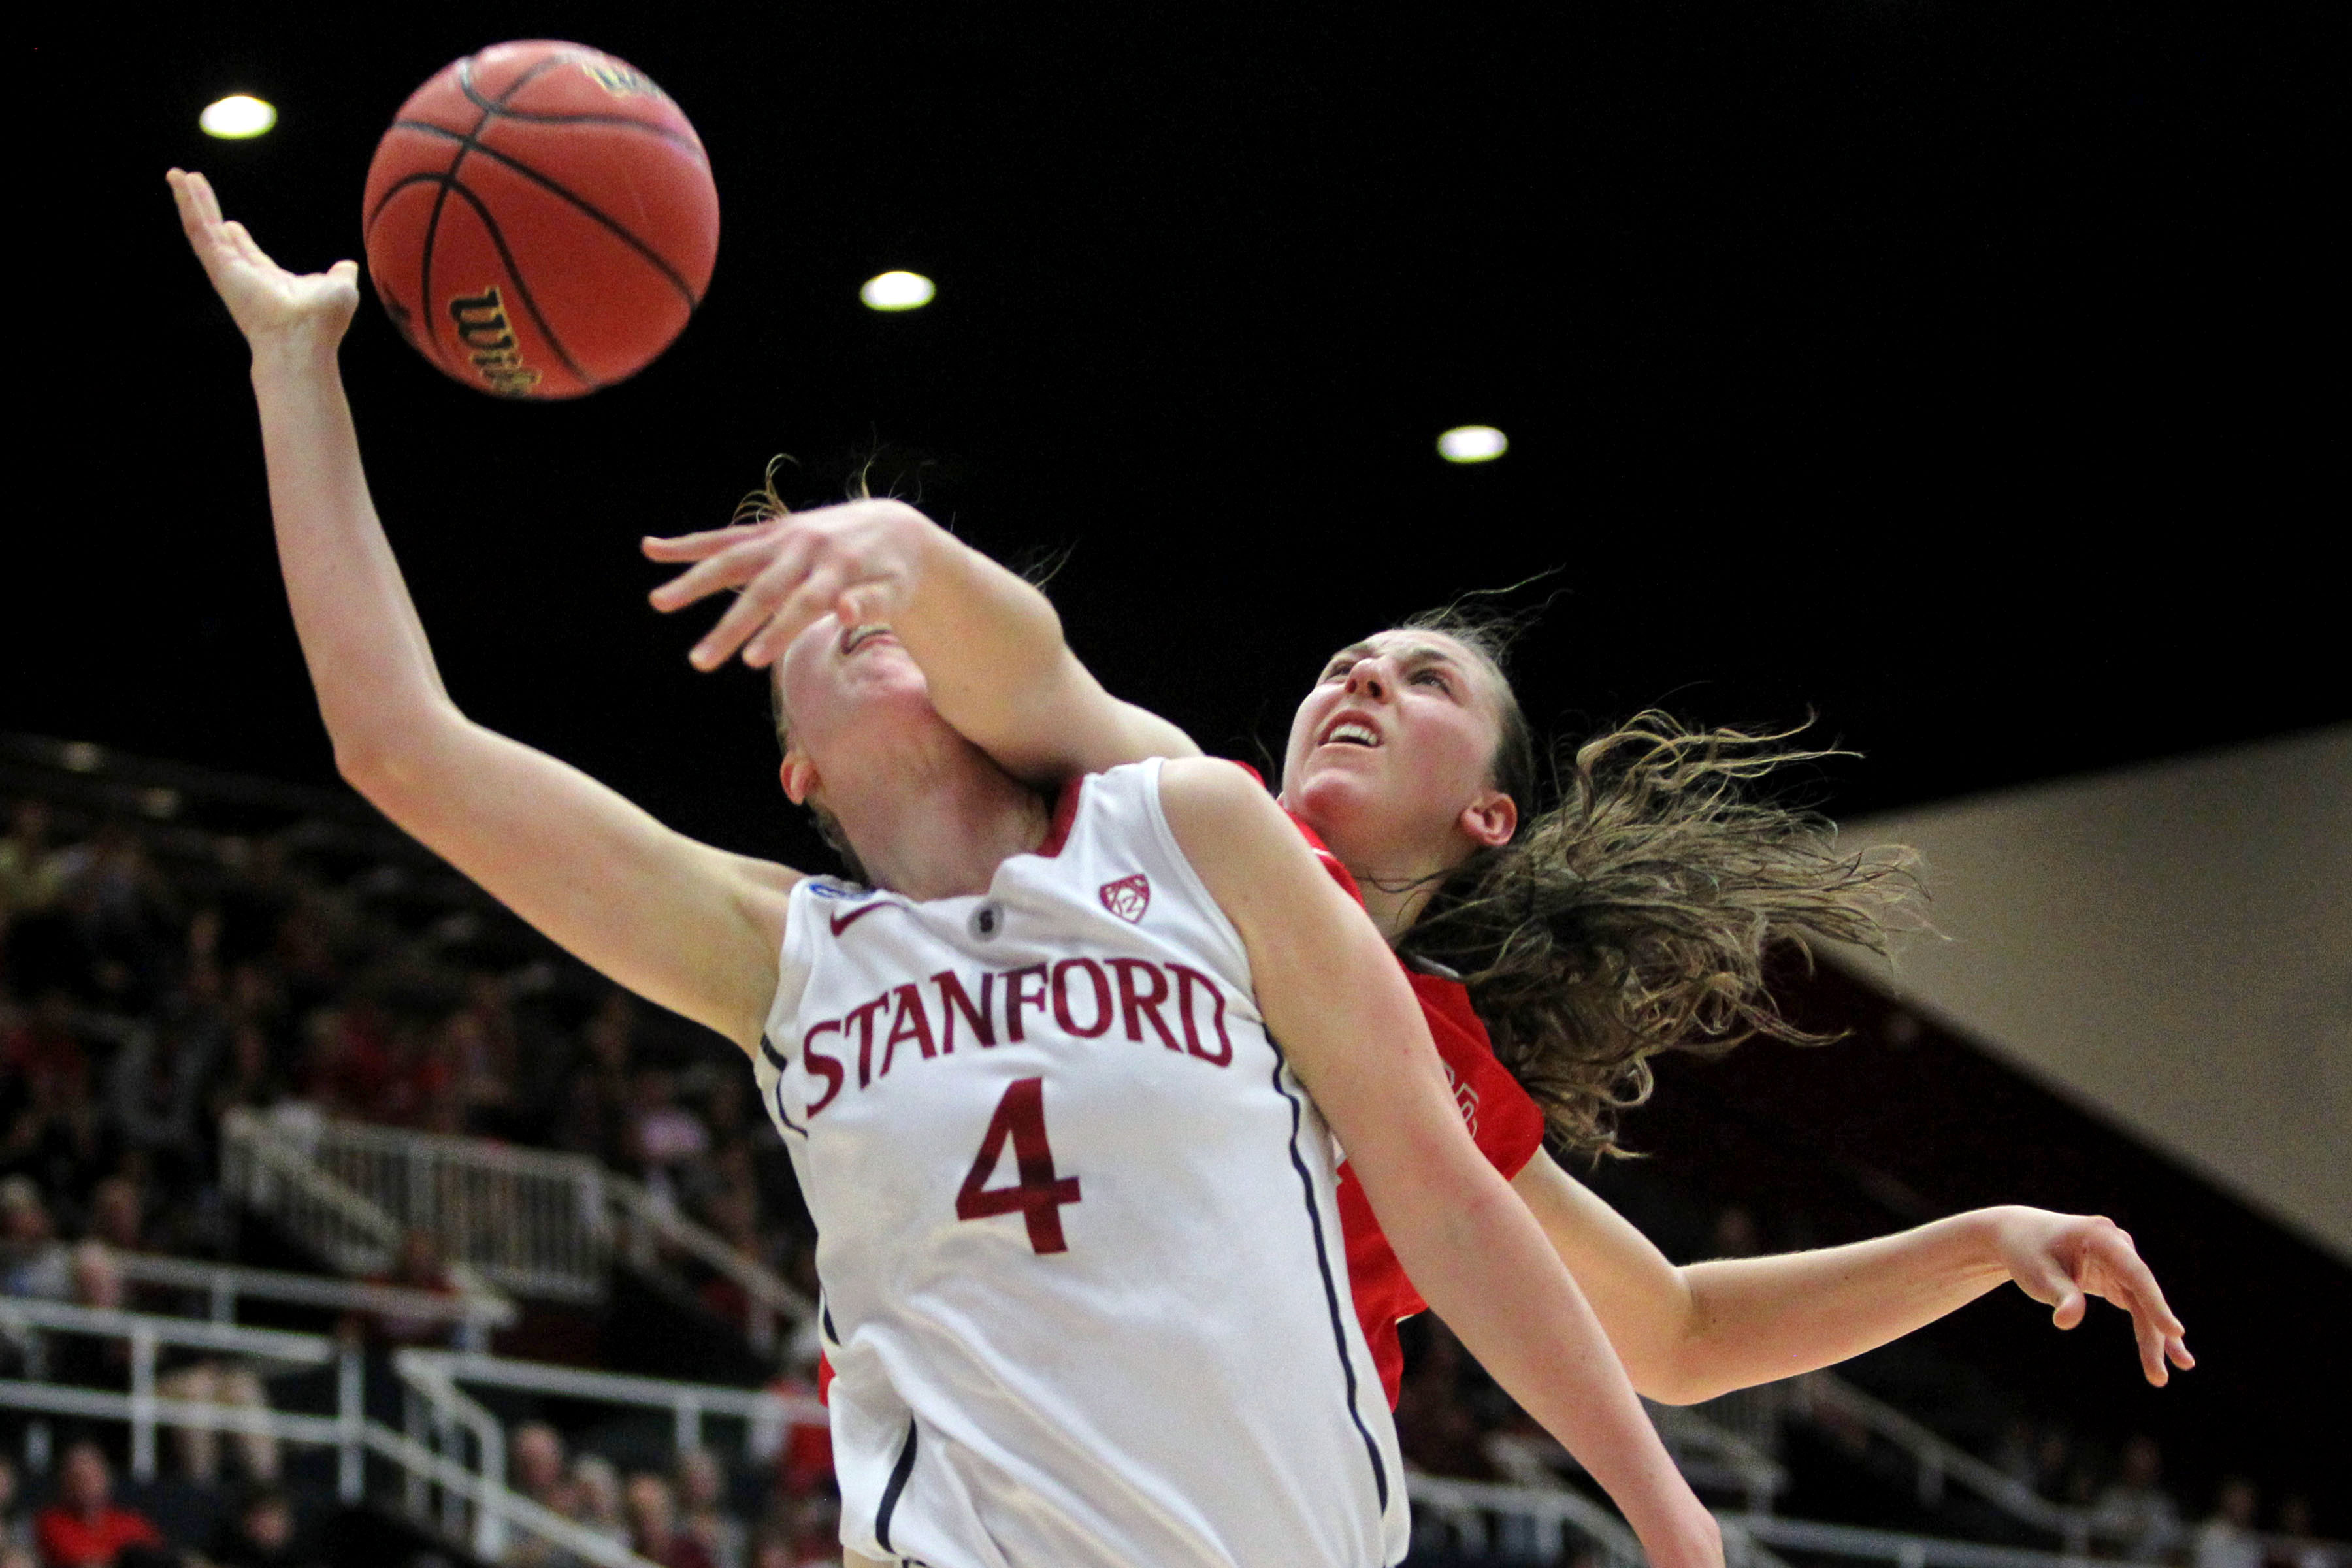 Not relevant. Not a swipe at Stanford men's basketball. I just liked this photo too much not to share it.